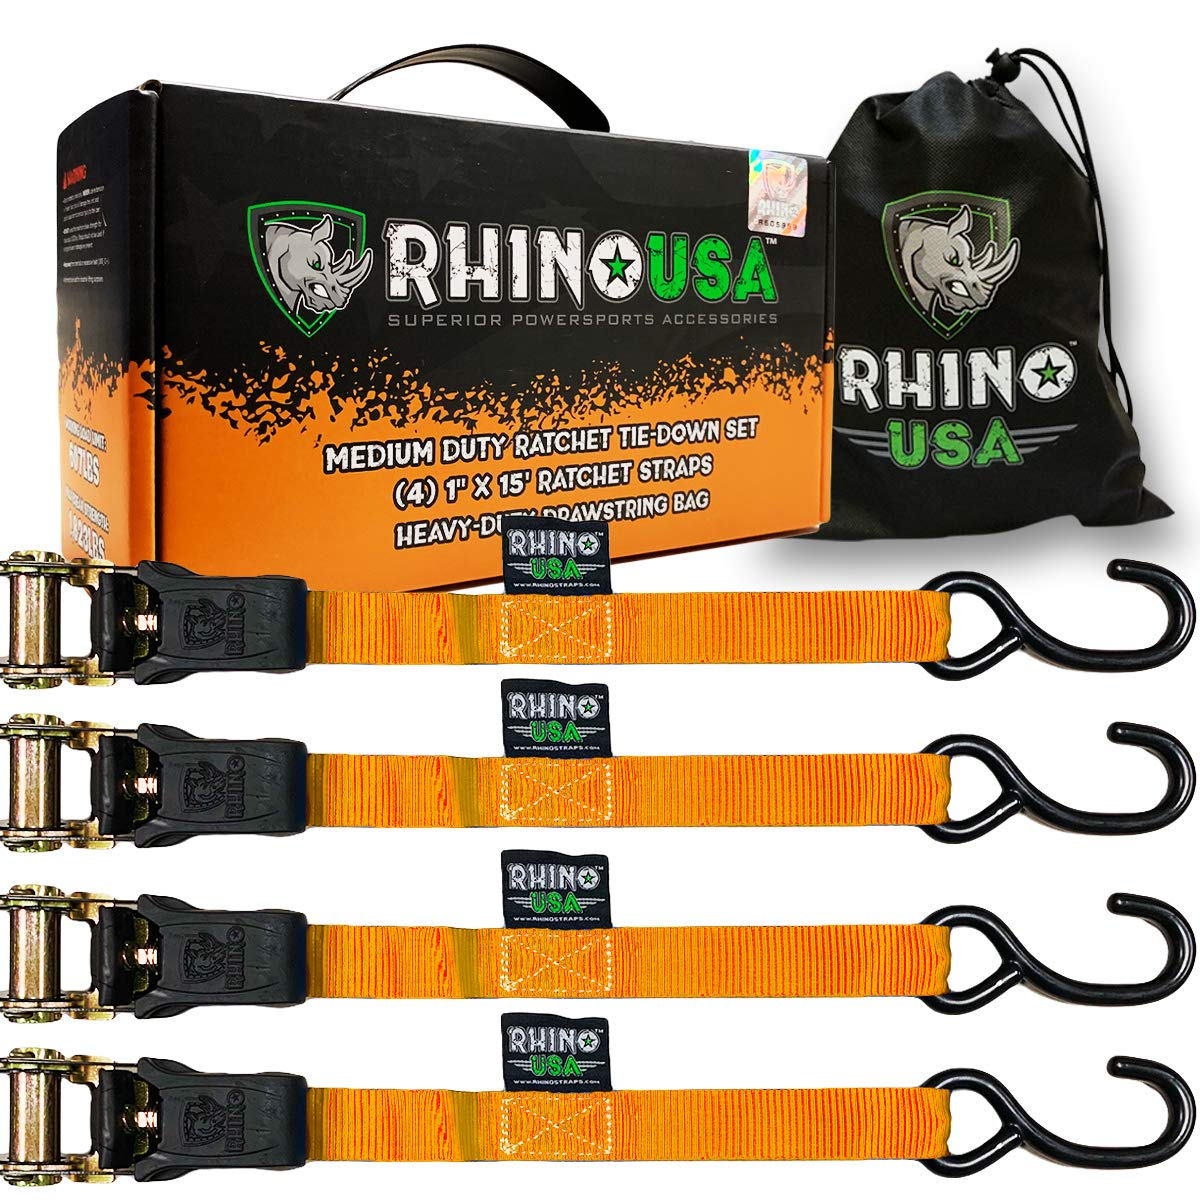 RHINO USA Ratchet Tie Down Straps (4PK) - 1,823lb Guaranteed Max Break Strength, Includes (4) Premium 1'' x 15' Rachet Tie Downs with Padded Handles. Best for Moving, Securing Cargo (ORANGE) by Rhino USA